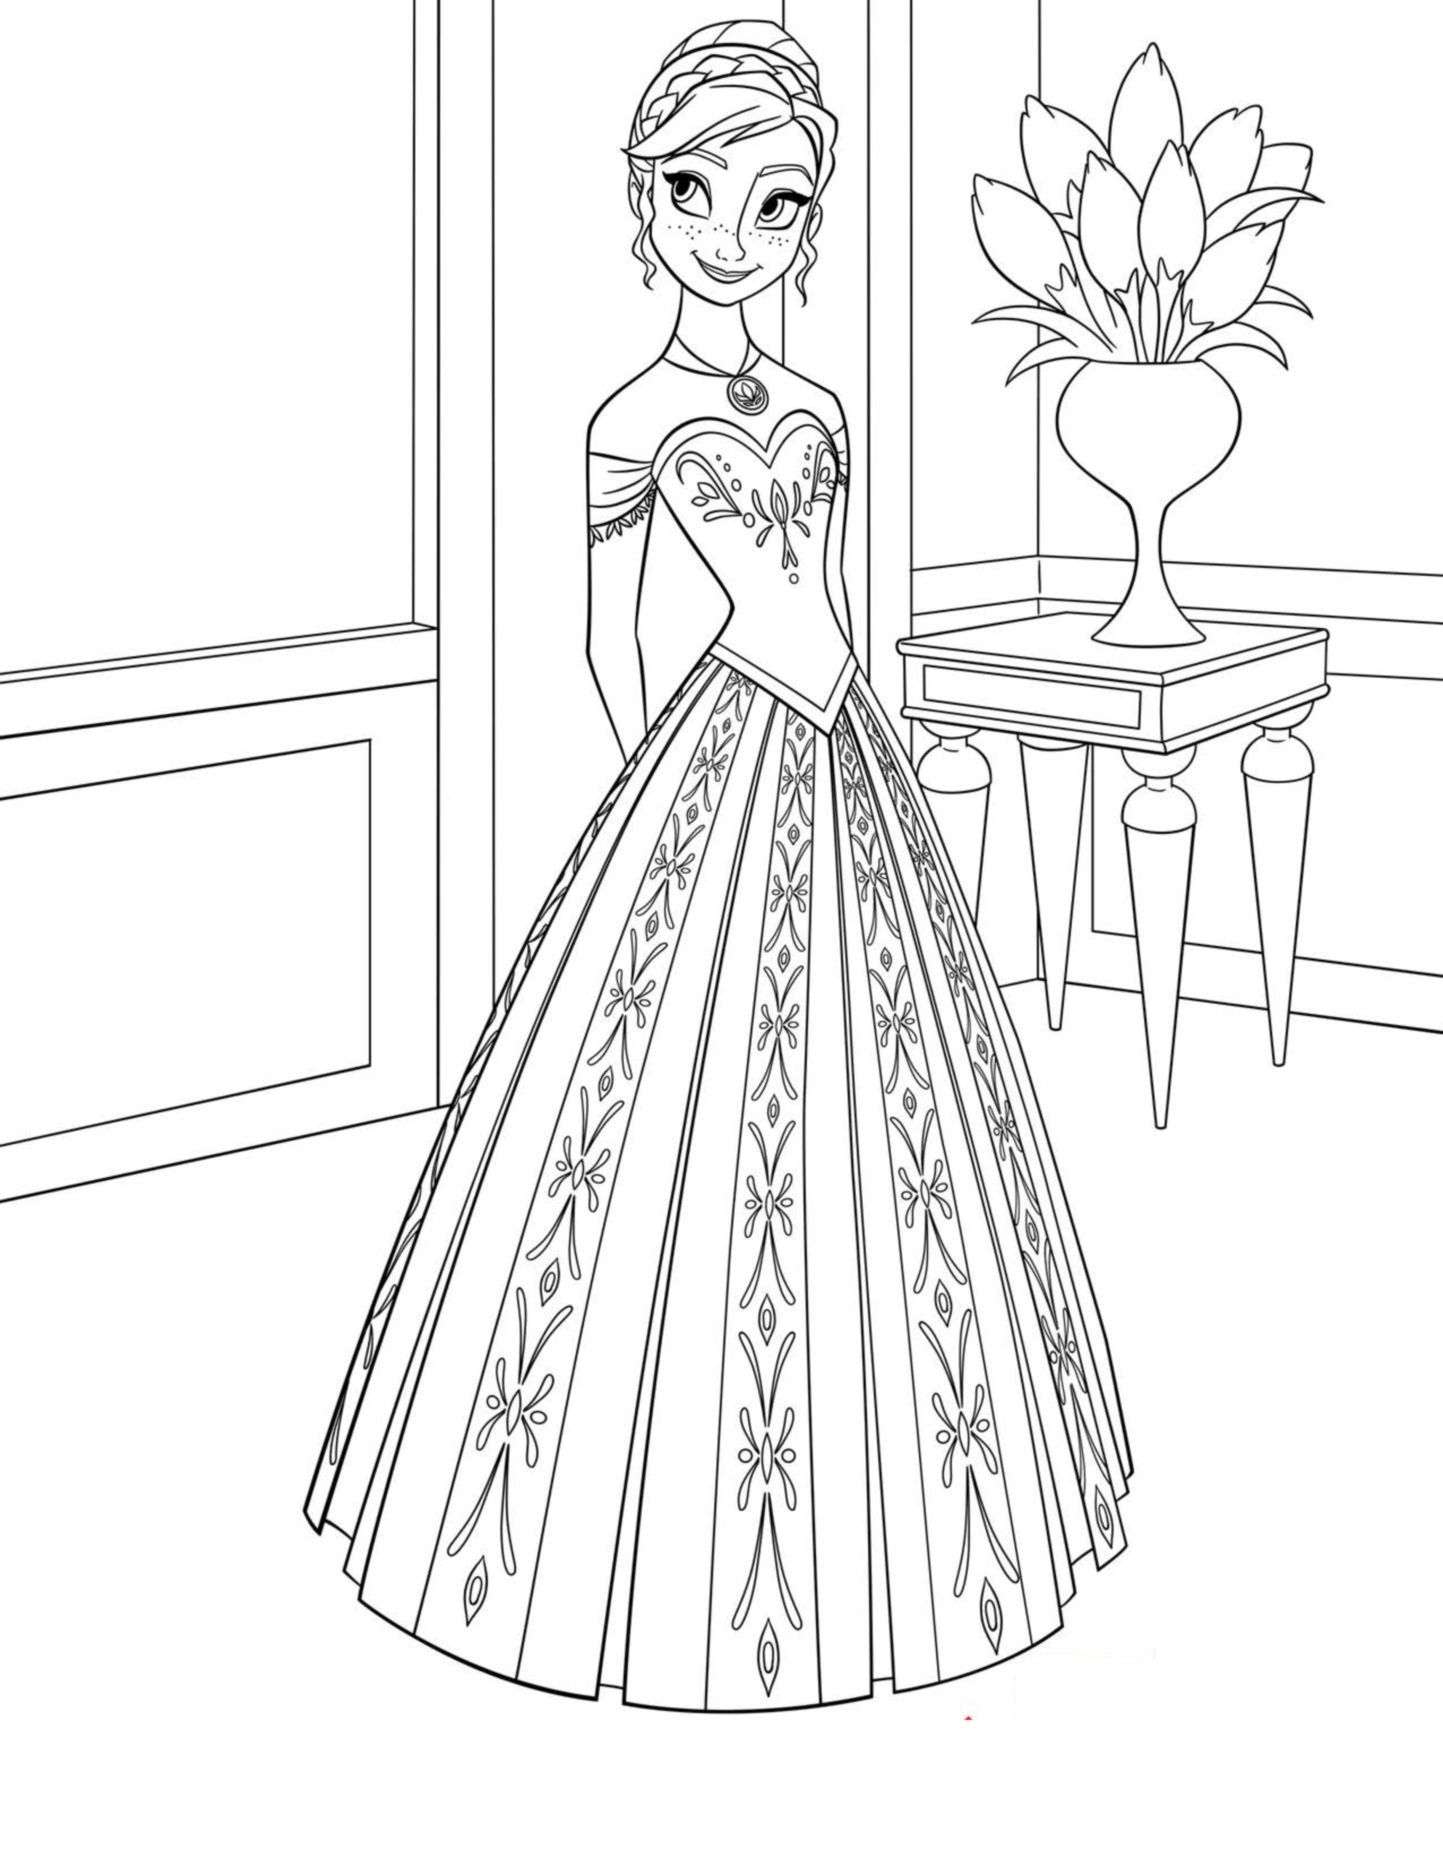 Free Frozen coloring page to print and color, for kids : Anna with a beautiful dress